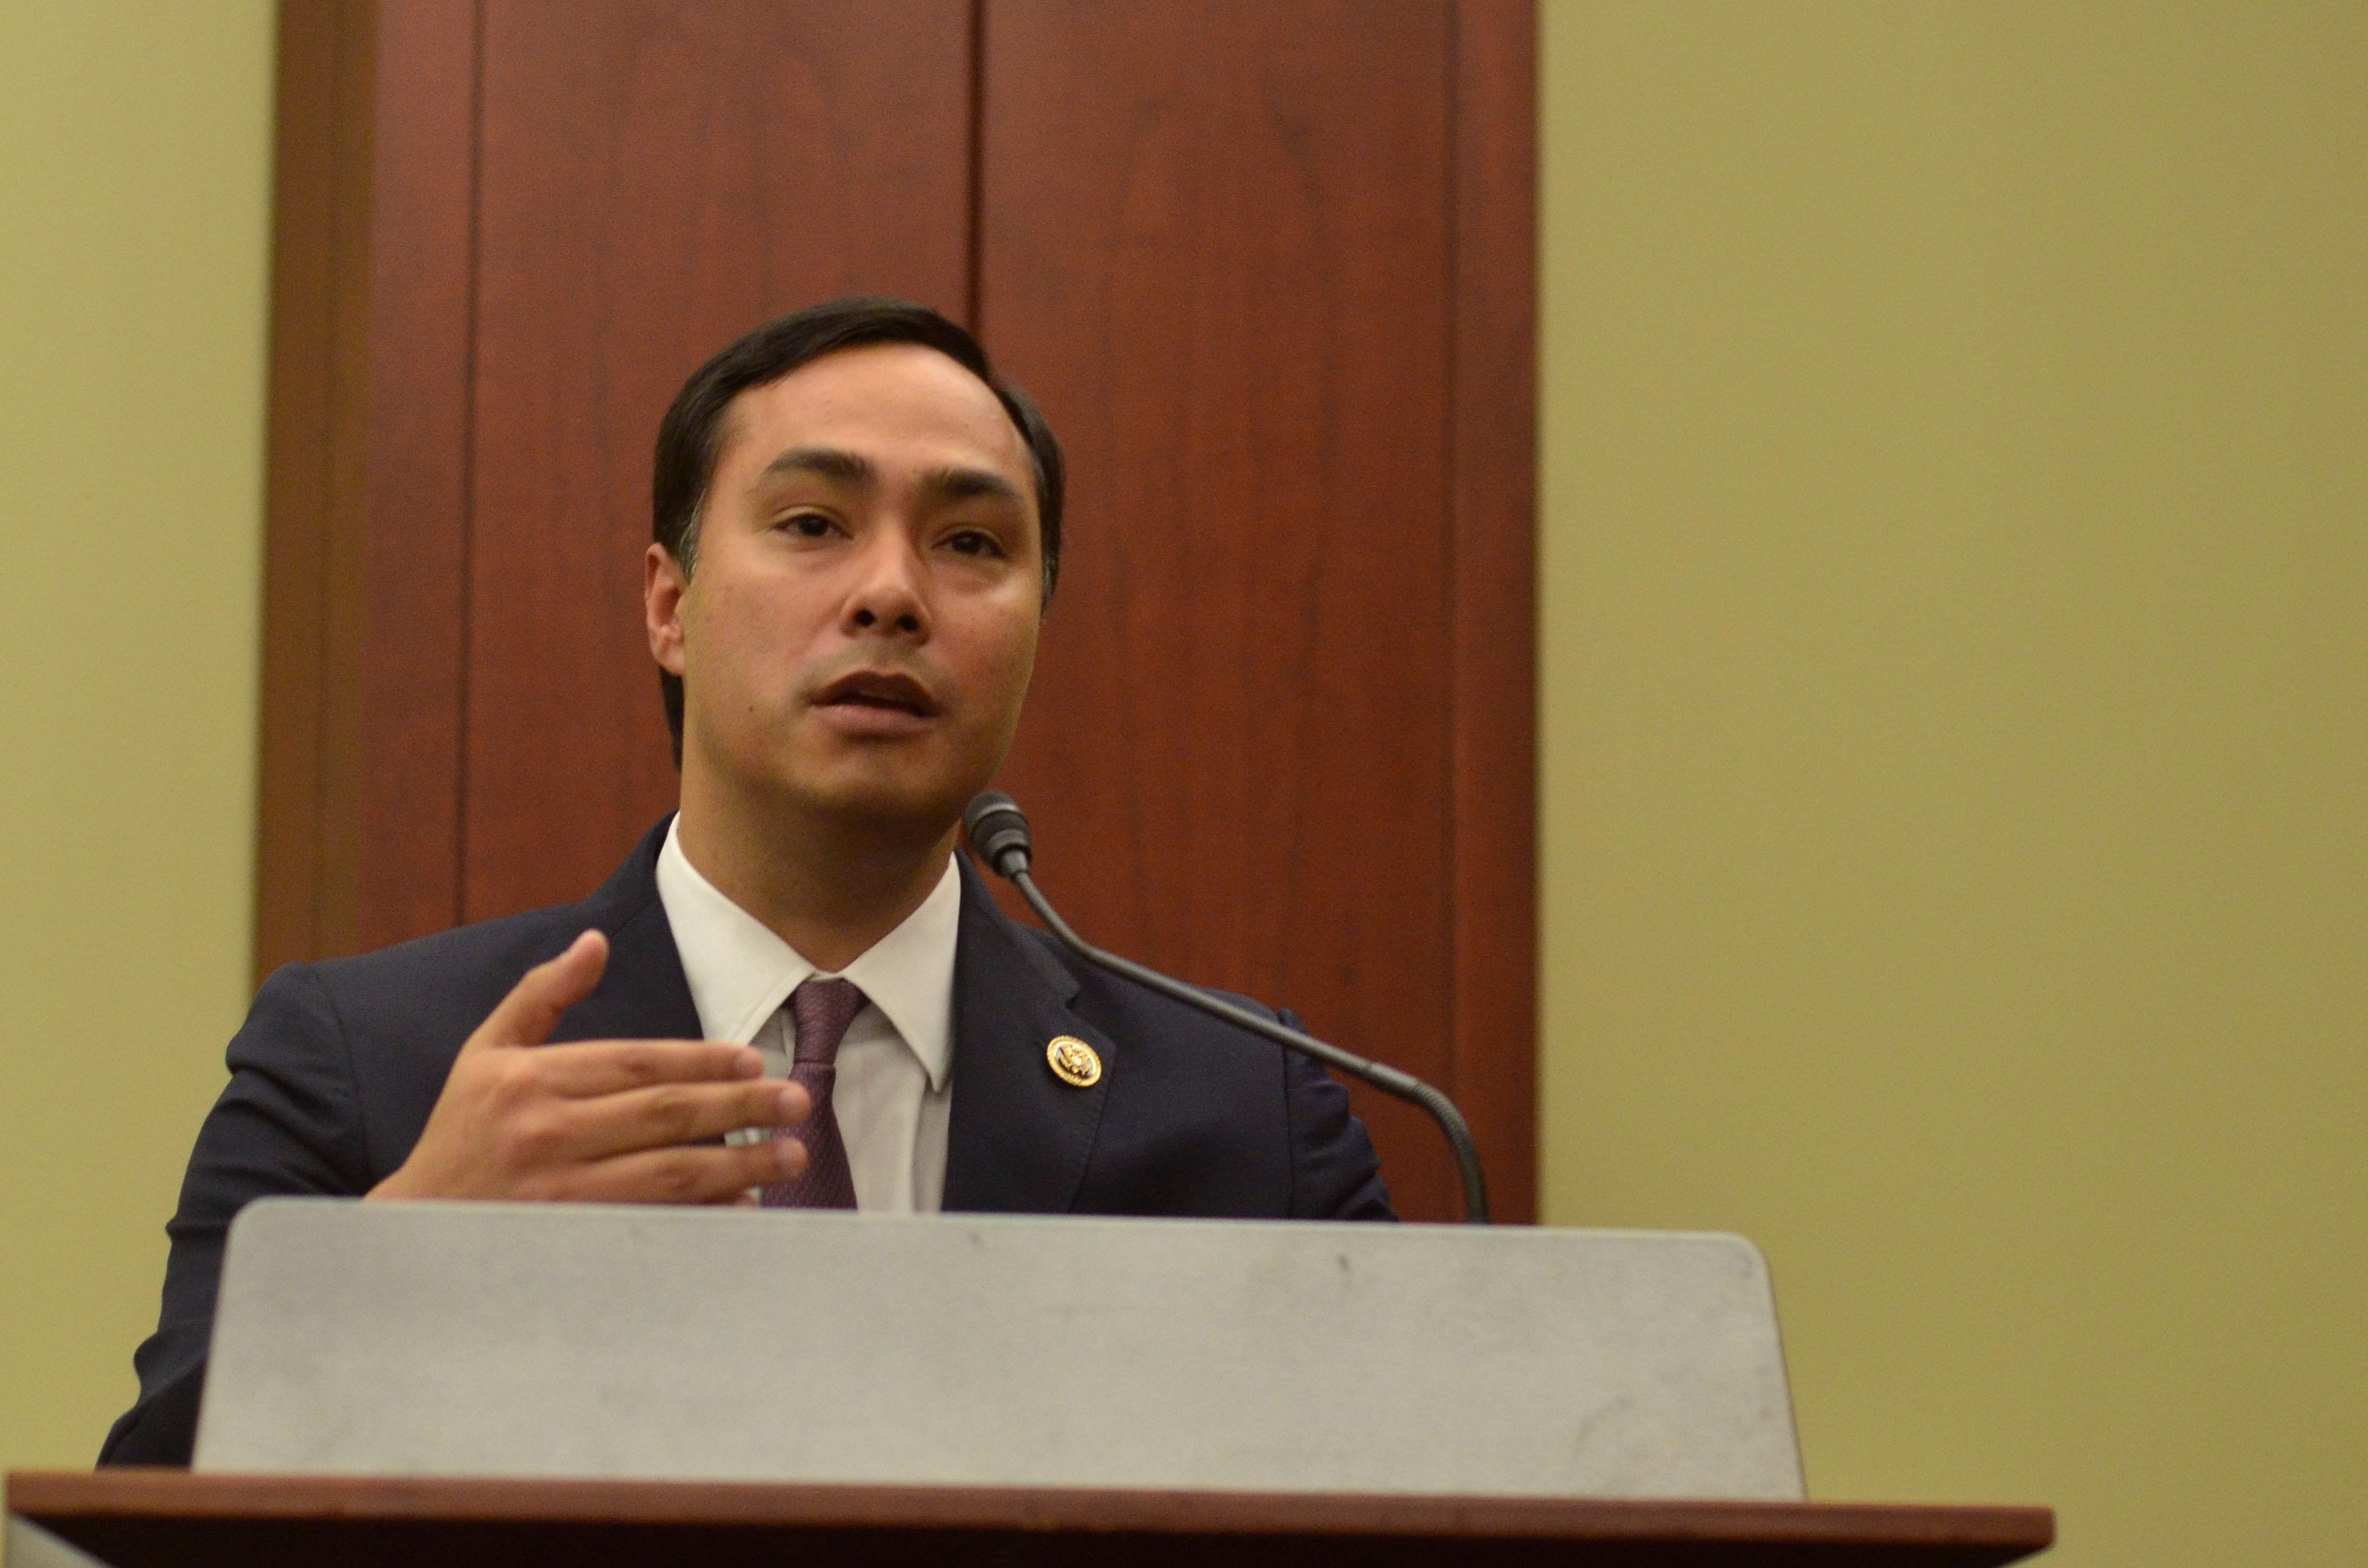 WASHINGTON, DC- SEPTEMBER 30:  Representative Joaquin Castro (D-TX) speaks during a private screening of 'Food Chains' in the Capitol Visitors Center on September 30, 2015 in Washington, DC.   (Photo by Kris Connor/Getty Images for 'Food Chains')